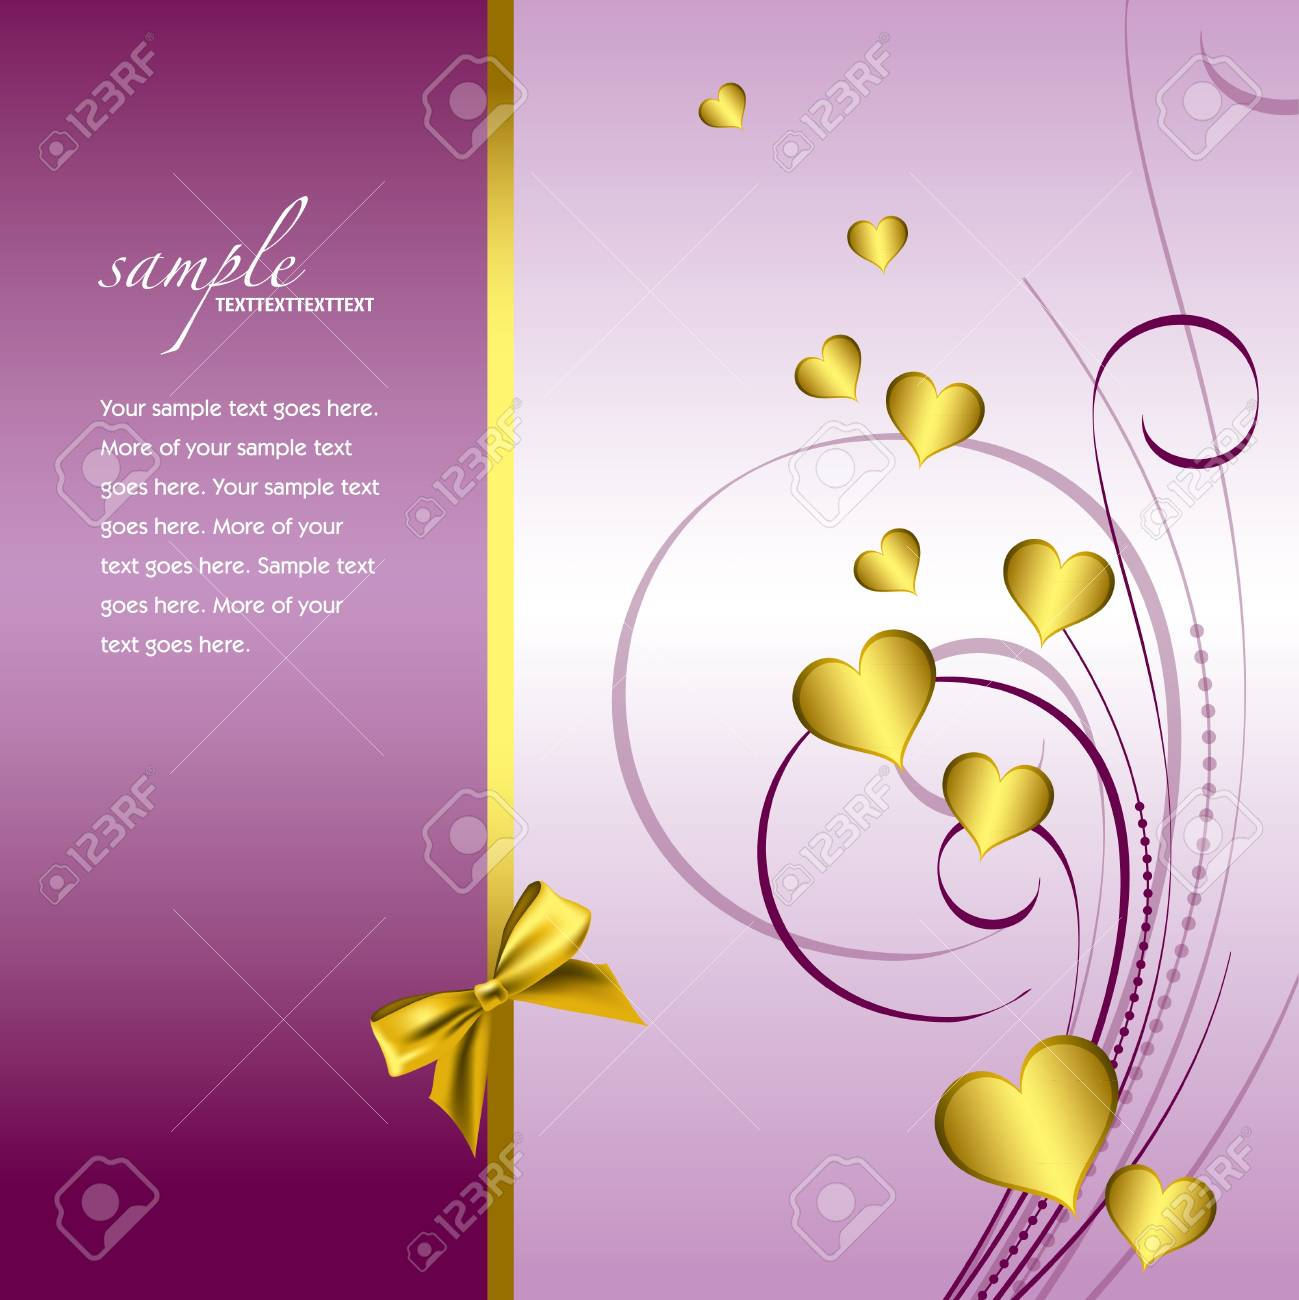 Valentines Day Background  Vector Illustration Stock Vector - 17303458